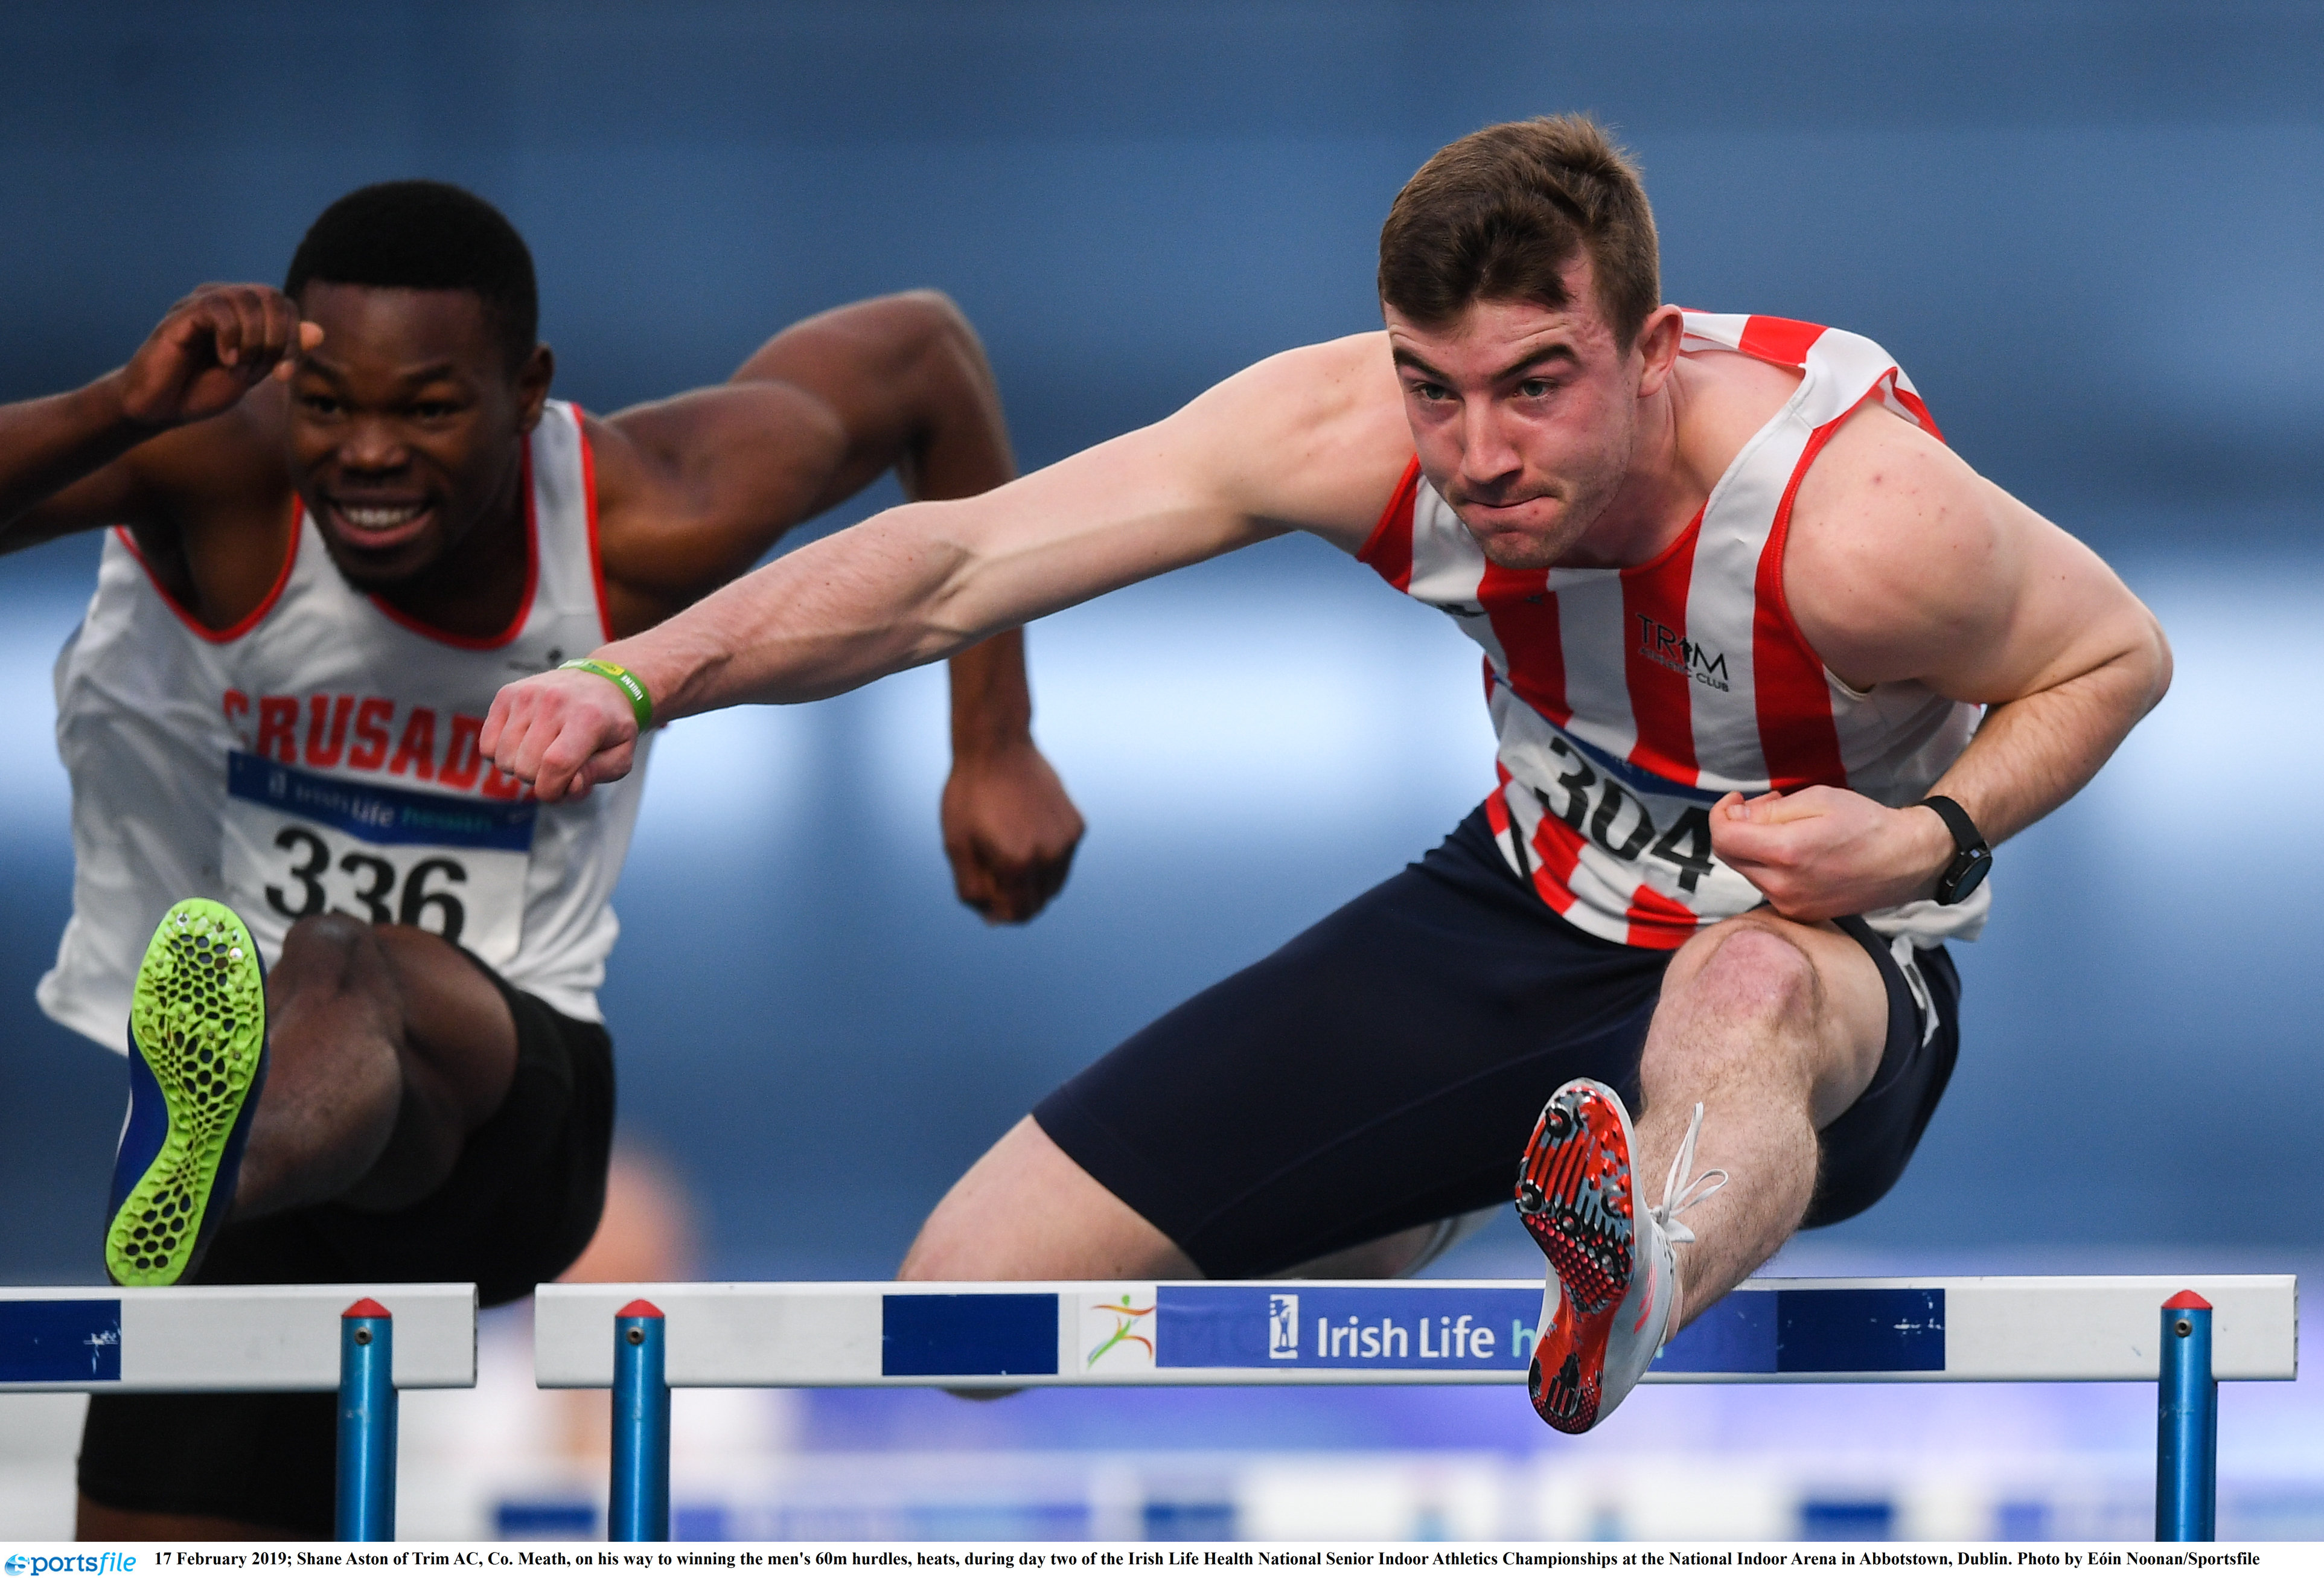 Aston and O'Connor look to star in Combined Events